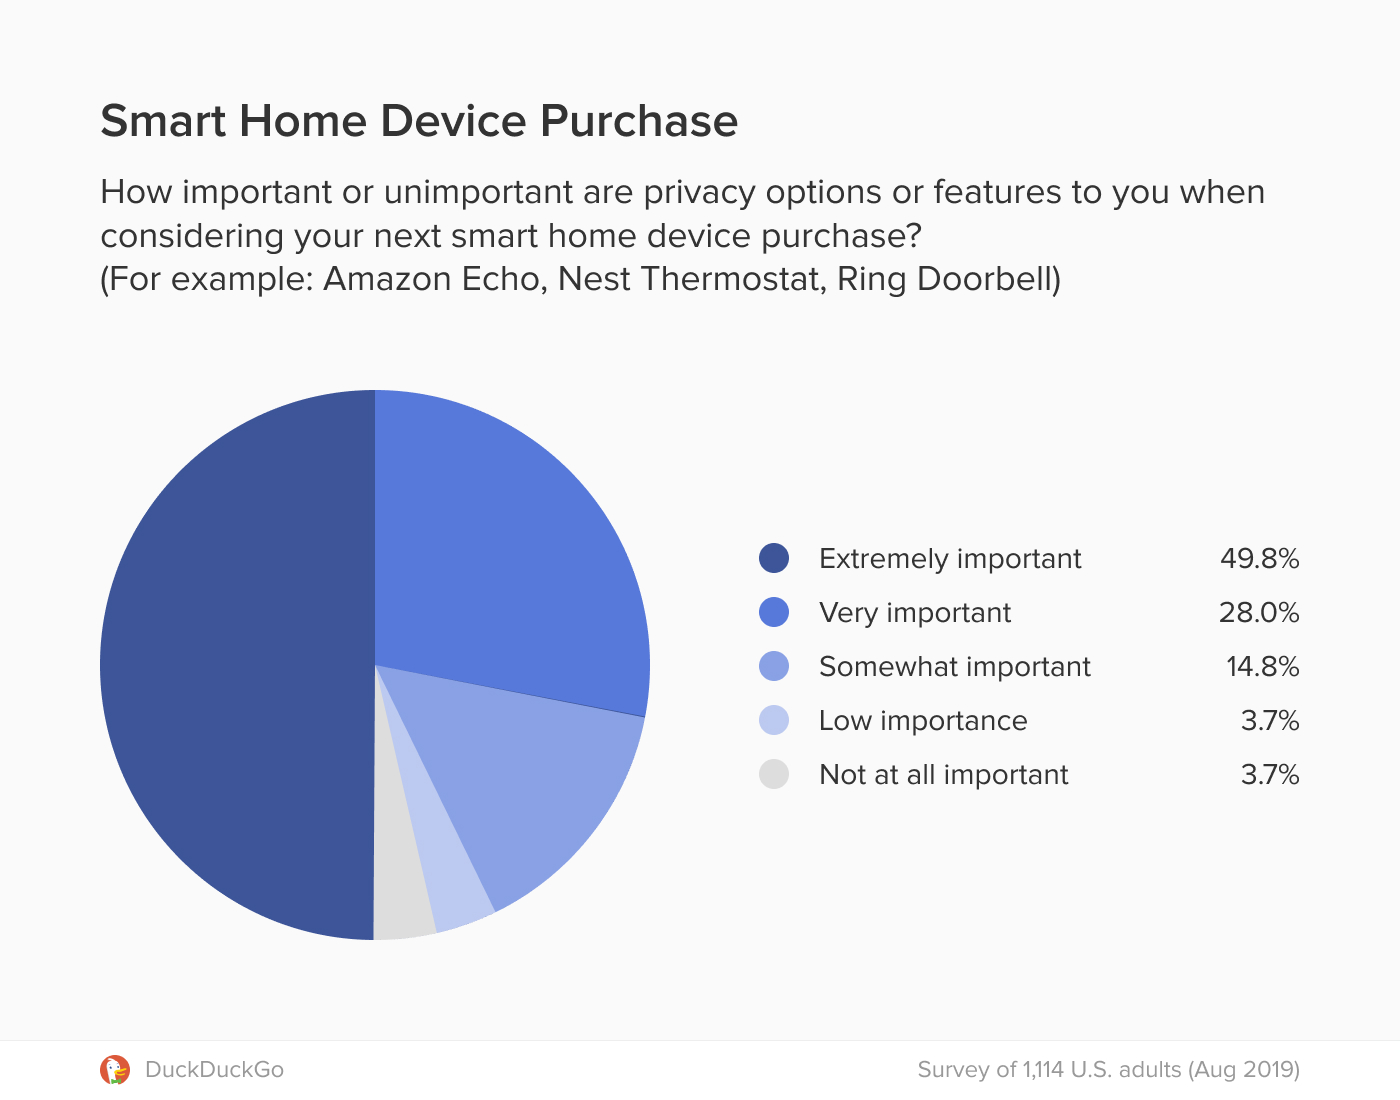 Chart showing importance of smart home device privacy features for respondents.